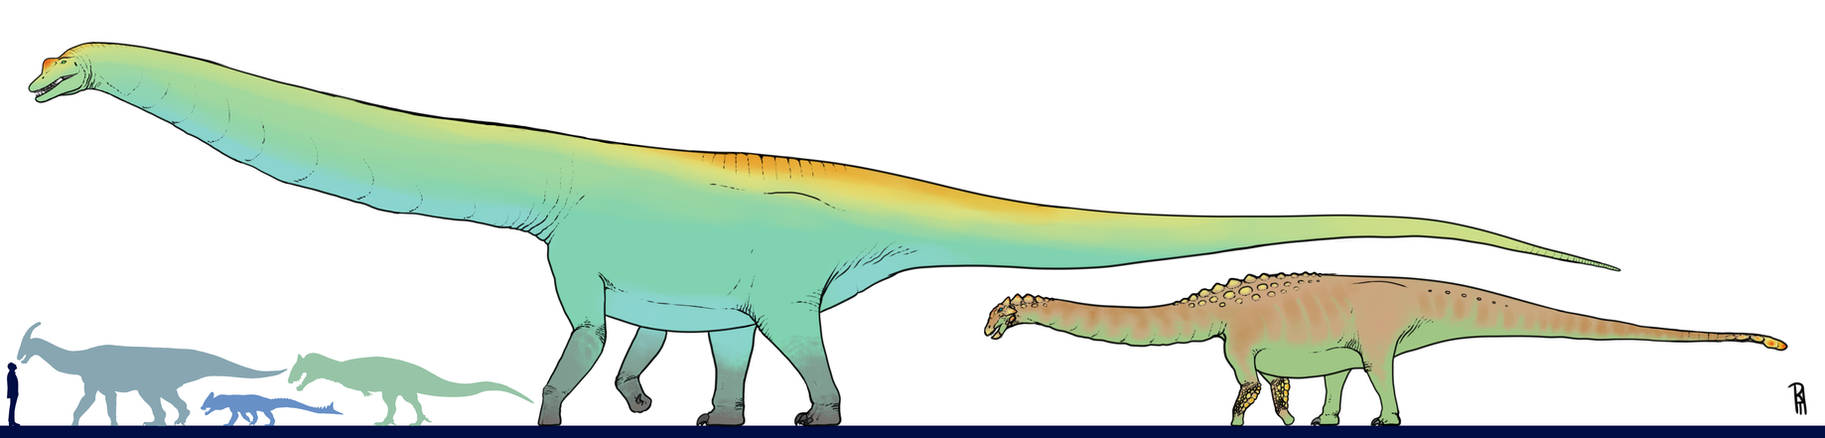 Hybrid dinosaurs by Rexander134 on DeviantArt